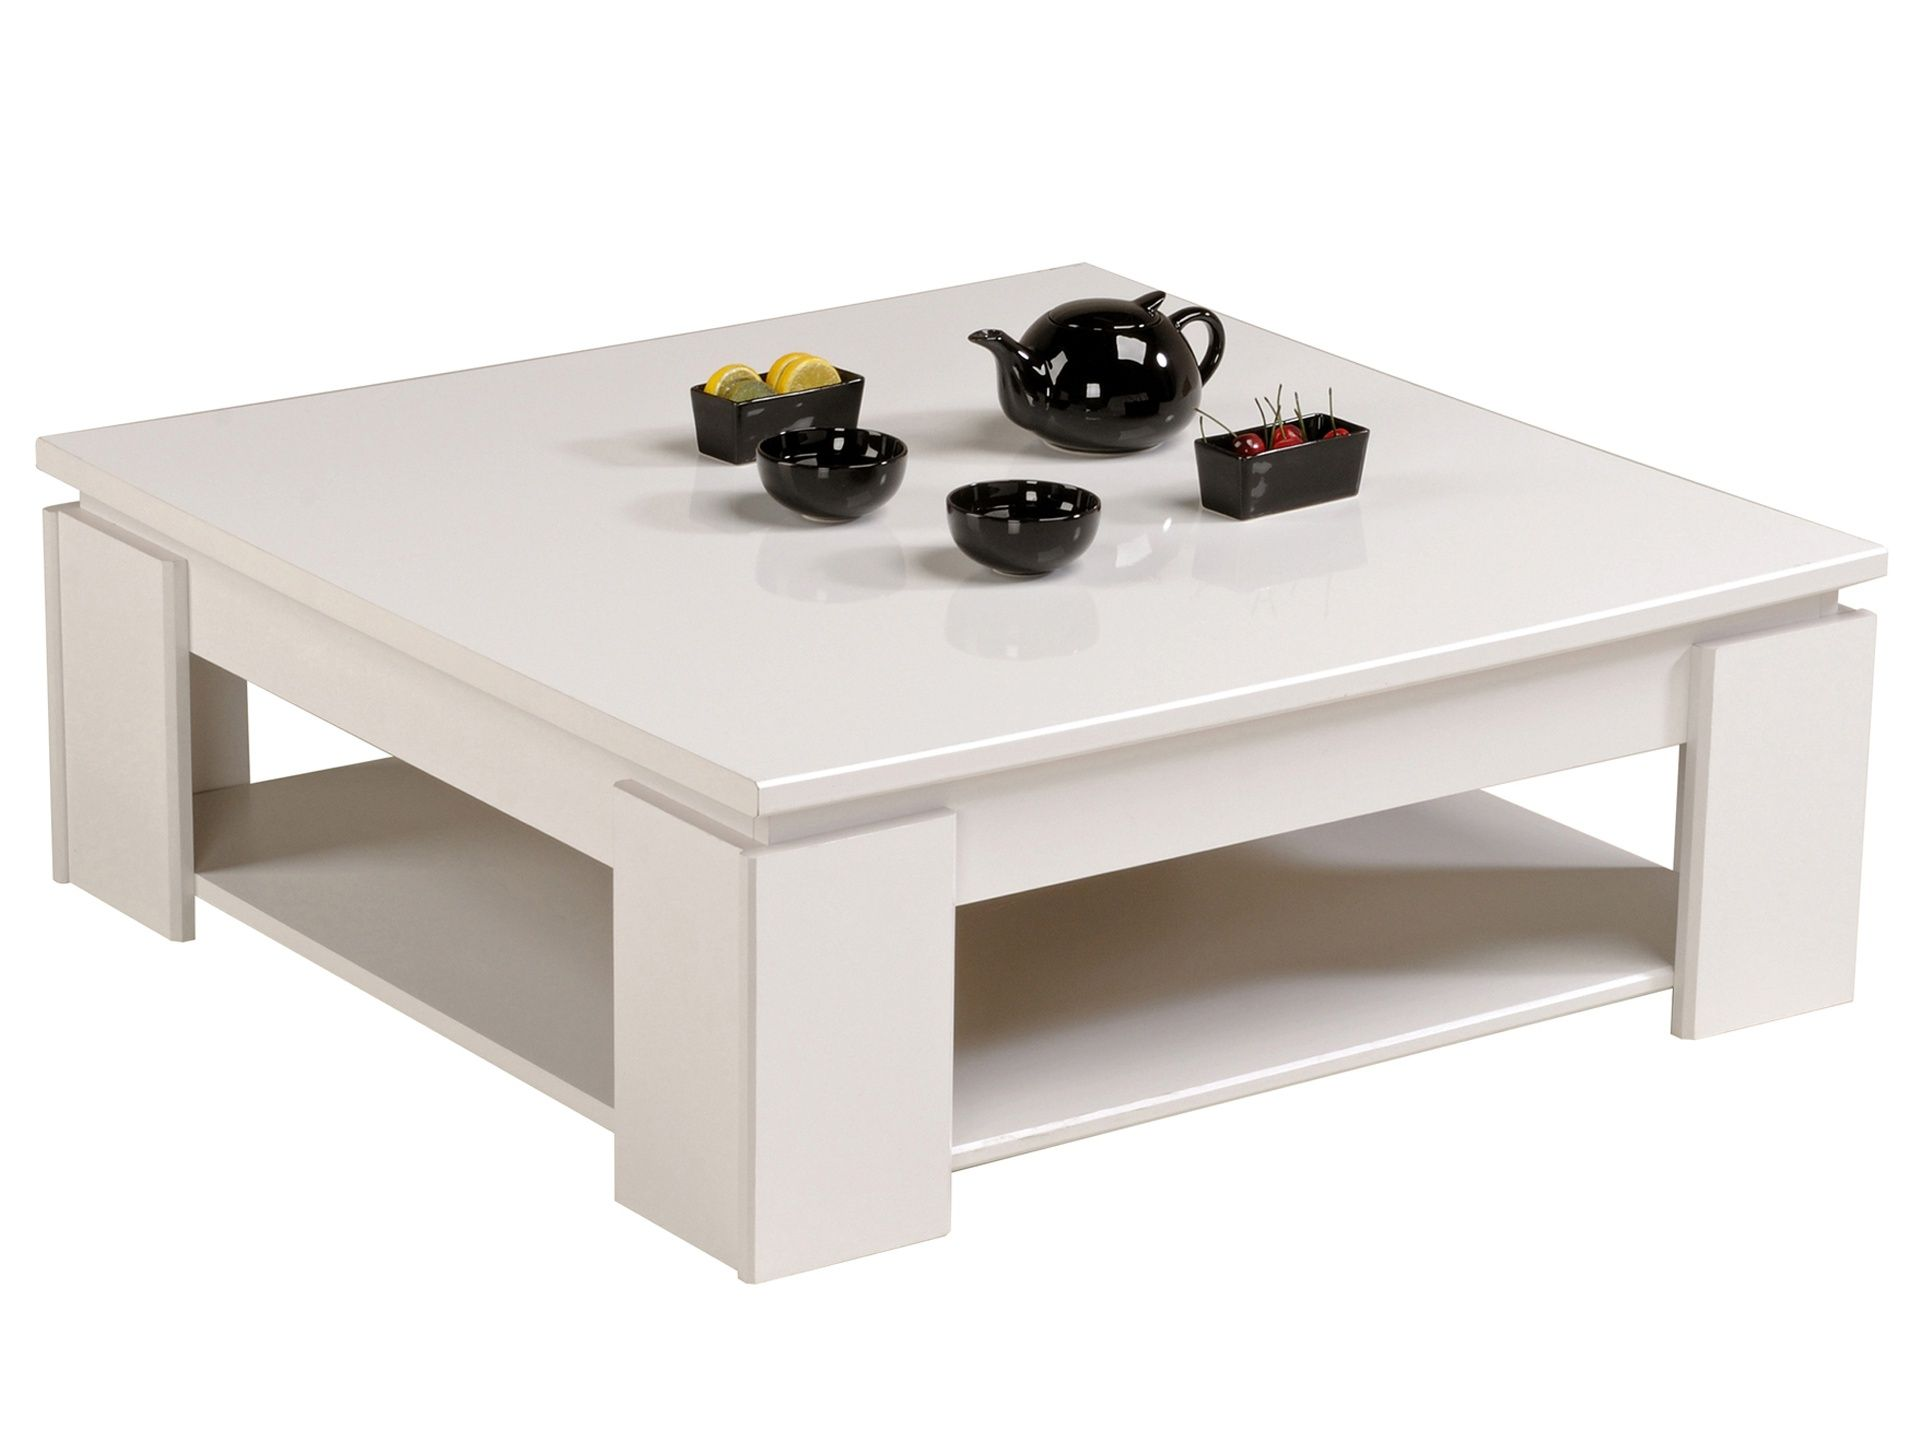 Table Basse Blanche Elina Topdecomeuble Com Grande Table Basse Carree Table Basse Table Basse Carree Blanche